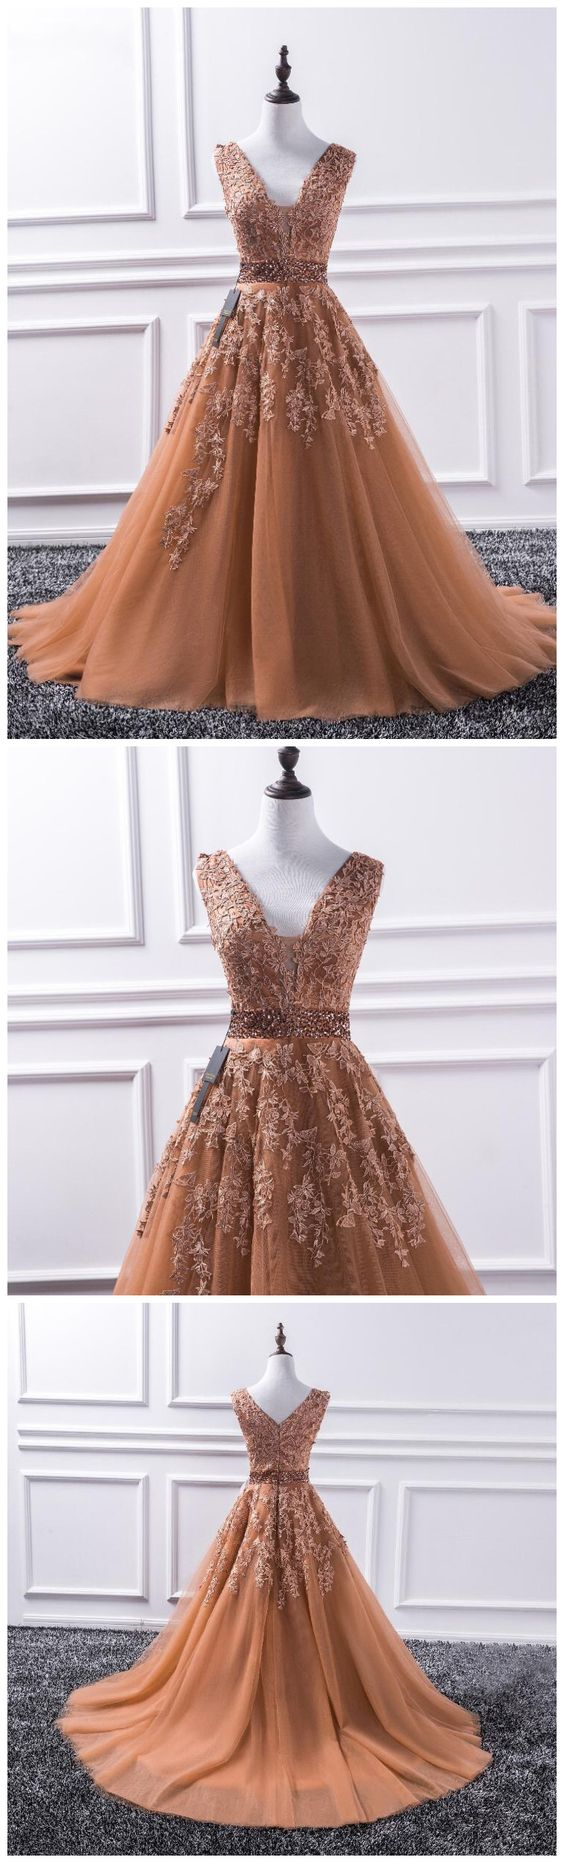 Simple Prom Dresses,New Prom Gown,Vintage Prom Gowns,Elegant Evening Dress,Cheap Evening Gowns,Party Gowns,PD14734